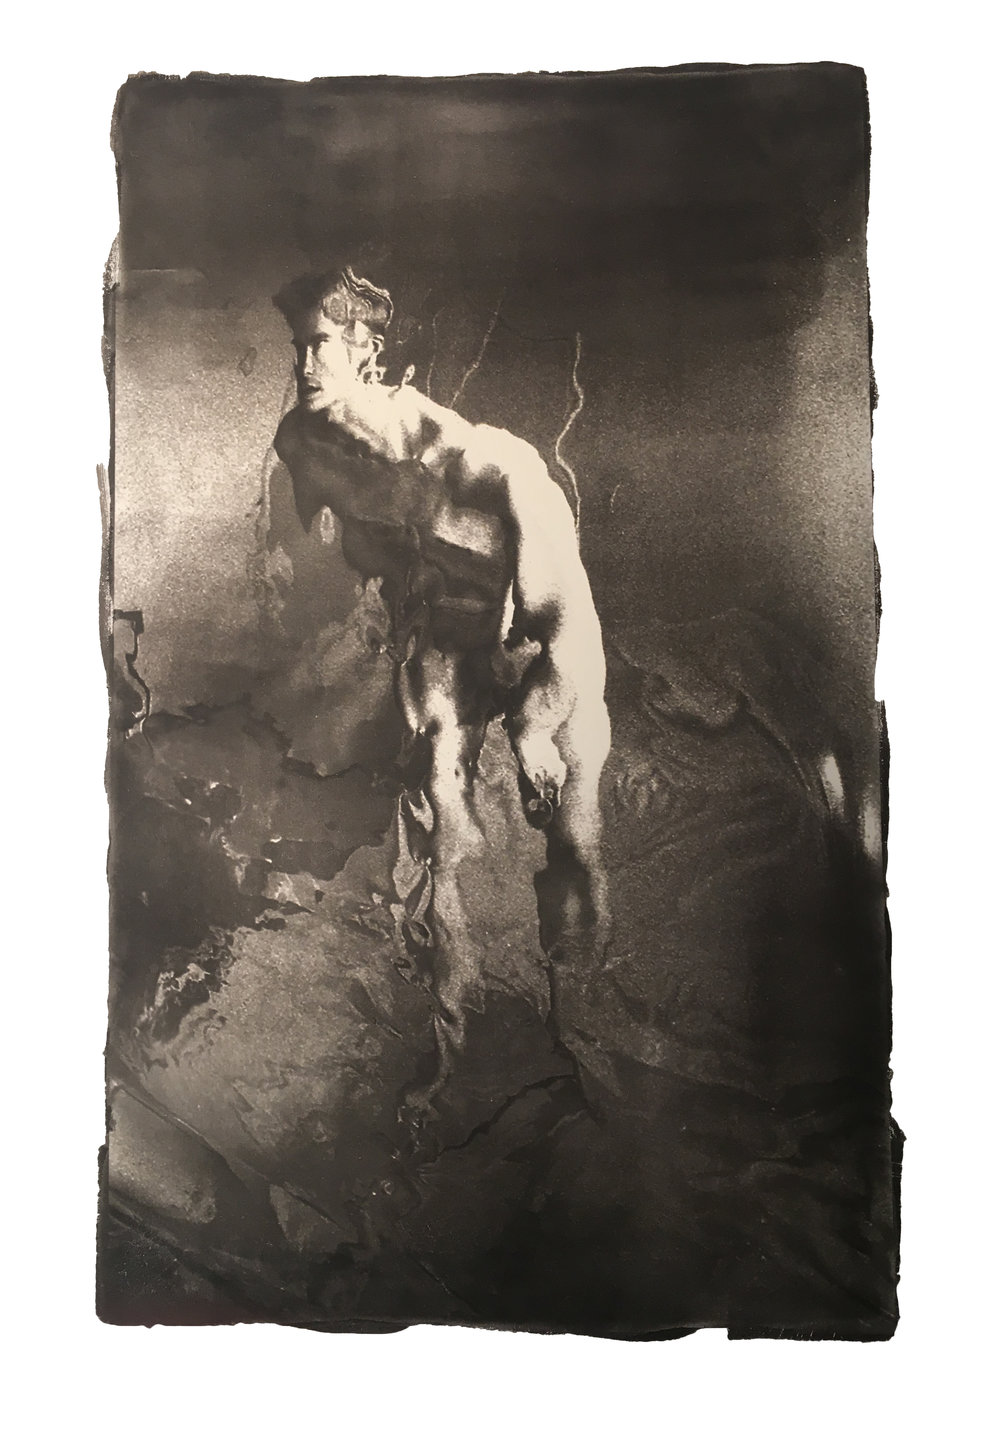 Top Analogue Print: Ernest Wiltshire with  Transformations